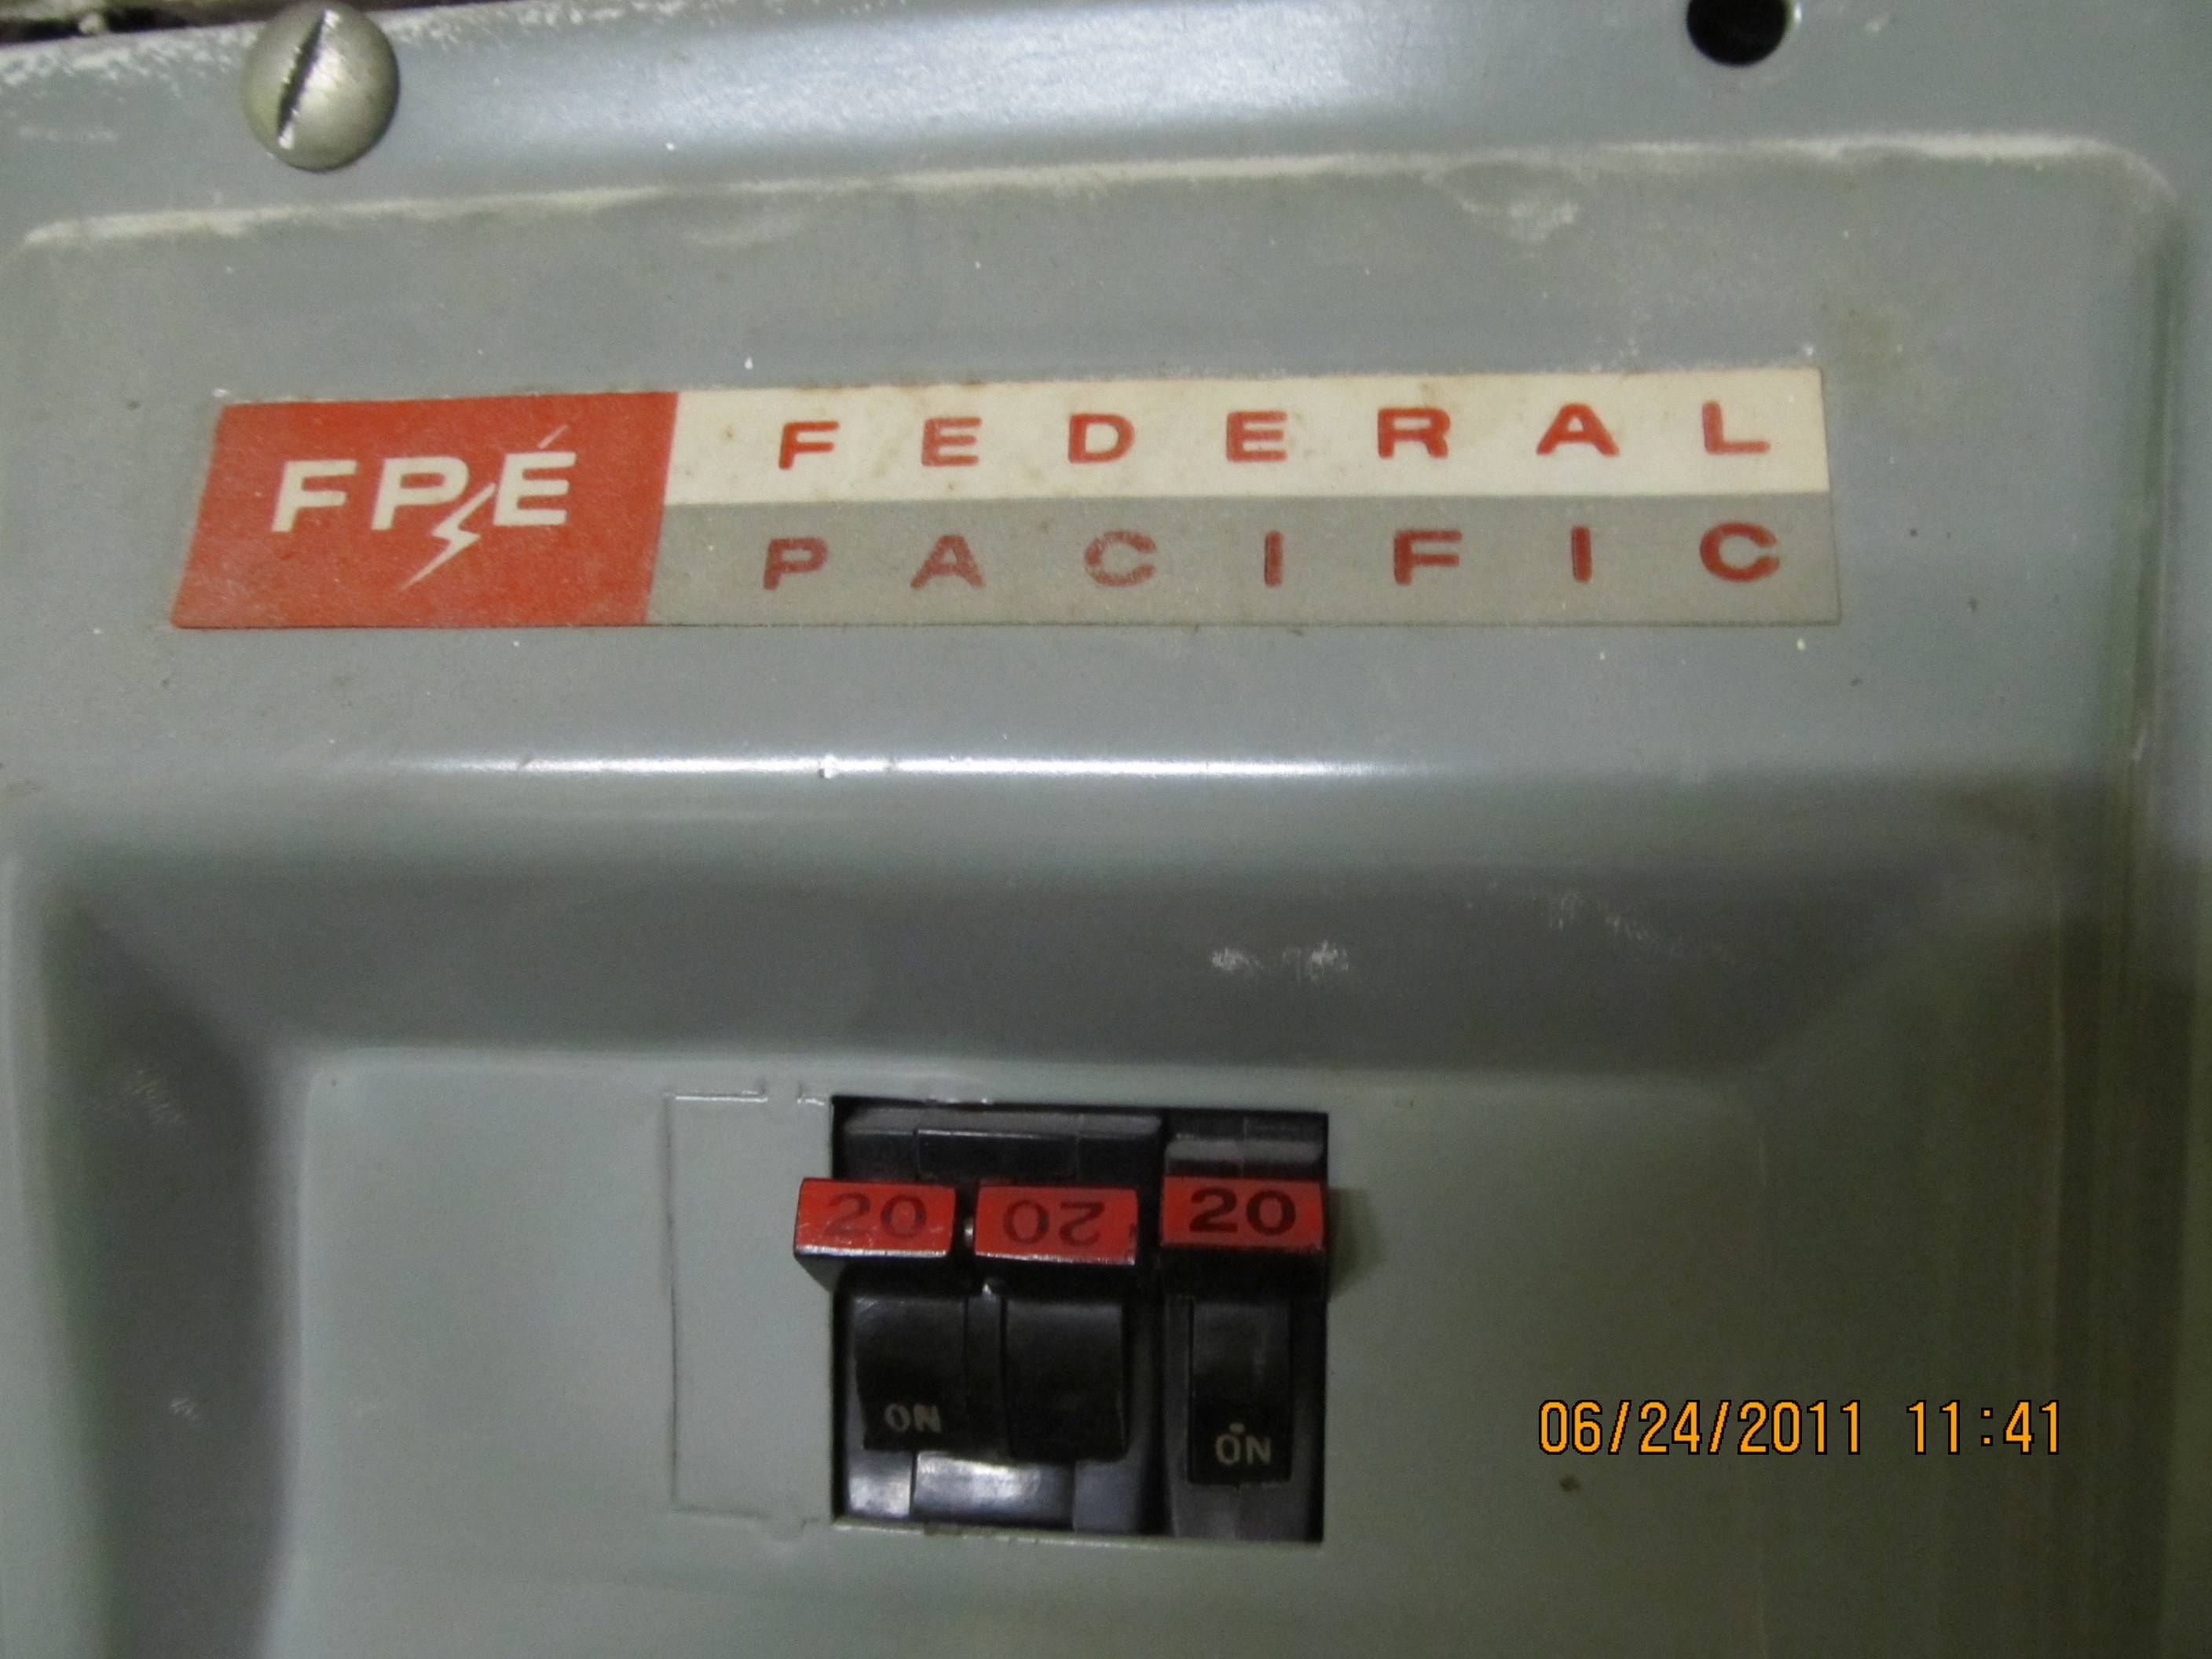 [QNCB_7524]  Wylex Fuse Box Recall - Japanese Fender 5 Way Switch Wiring Diagram -  bobcate-s70.deco-doe3.decorresine.it | Vw Fuse Box Recall |  | Wiring Diagram Resource